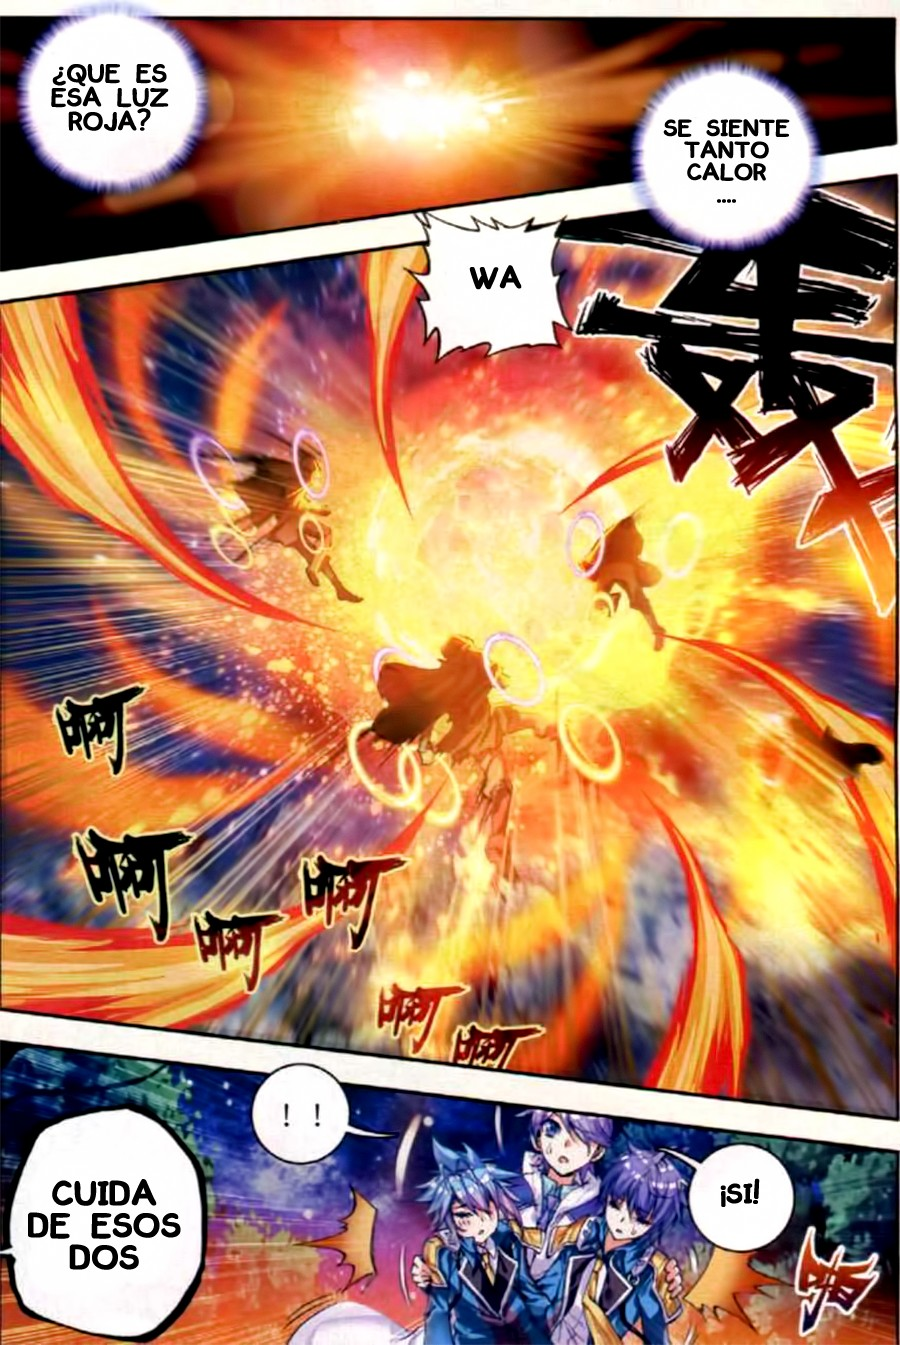 http://c5.ninemanga.com/es_manga/33/16417/435100/fc75d7ec538864978b5833d6a675c768.jpg Page 6